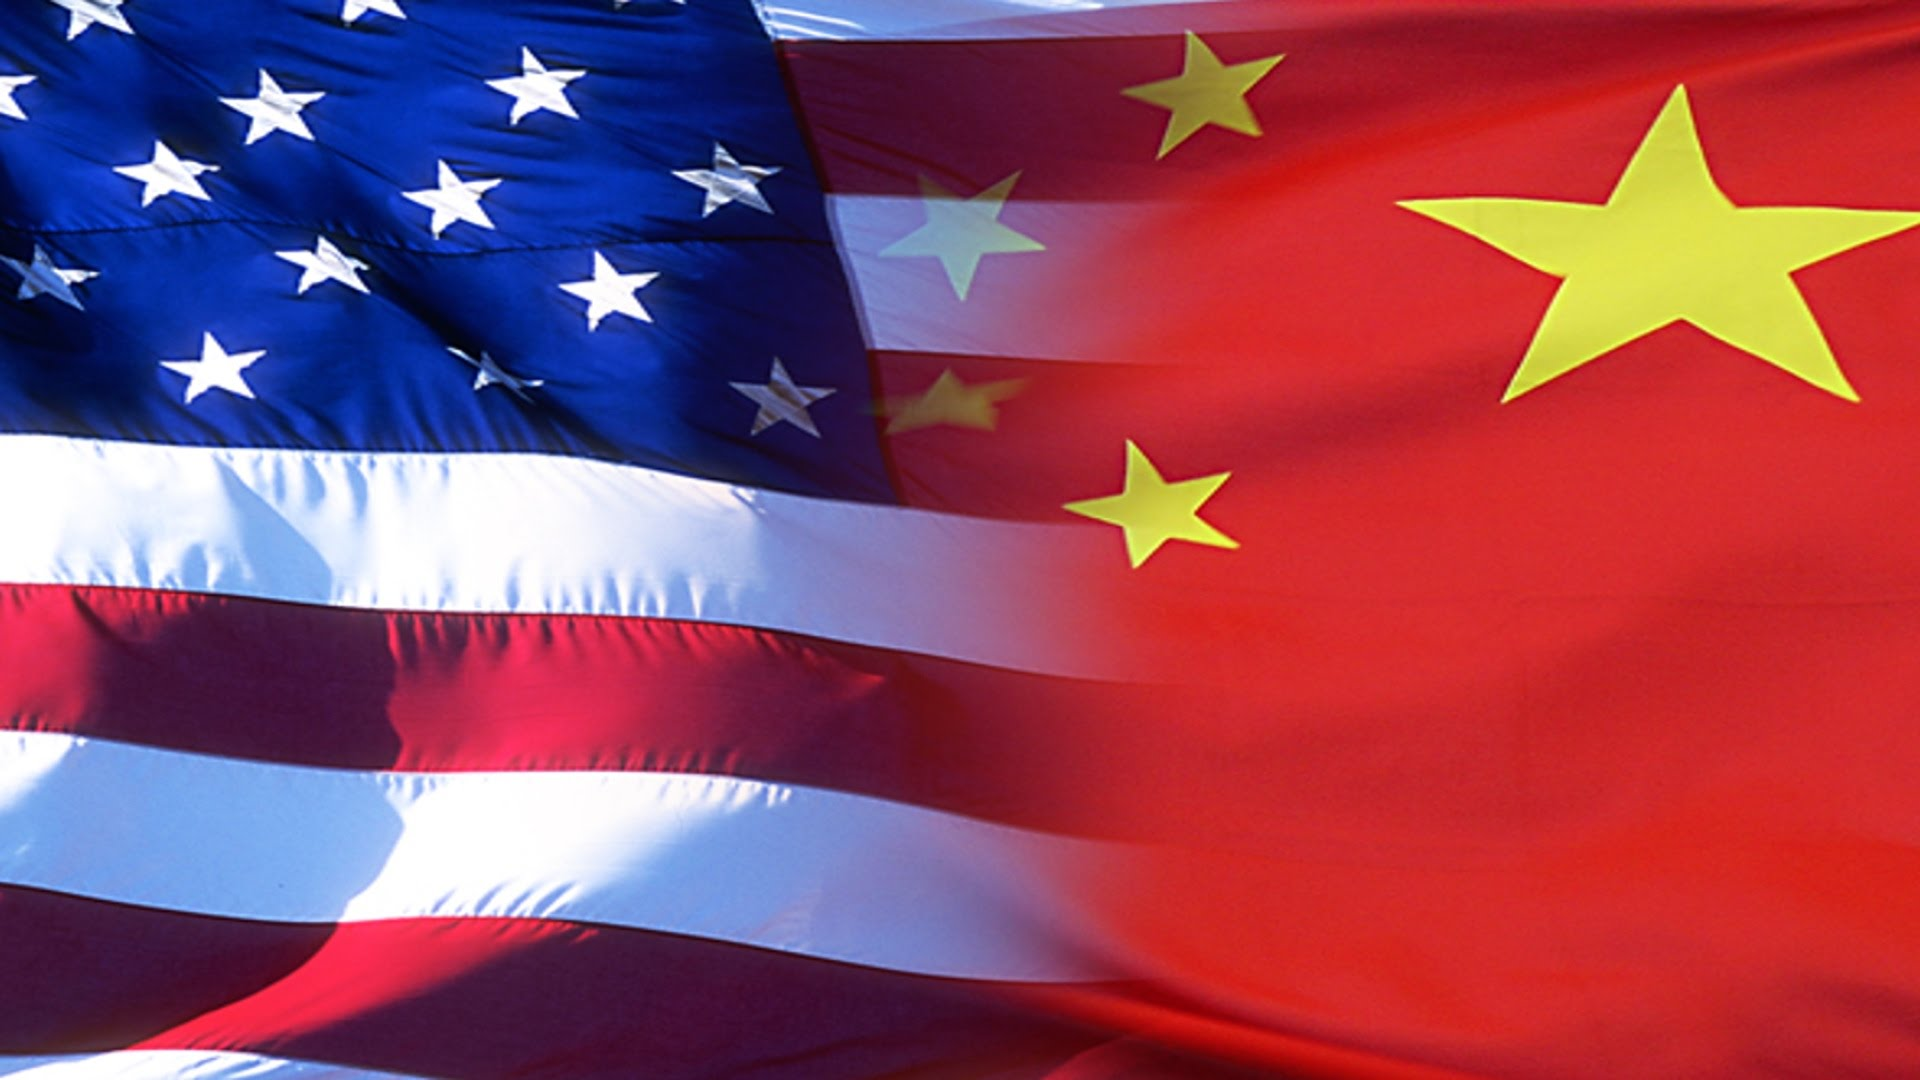 us and china The united states and its allies contend china's quota violates international trade norms, forcing multinational firms that use the metals to relocate to china.